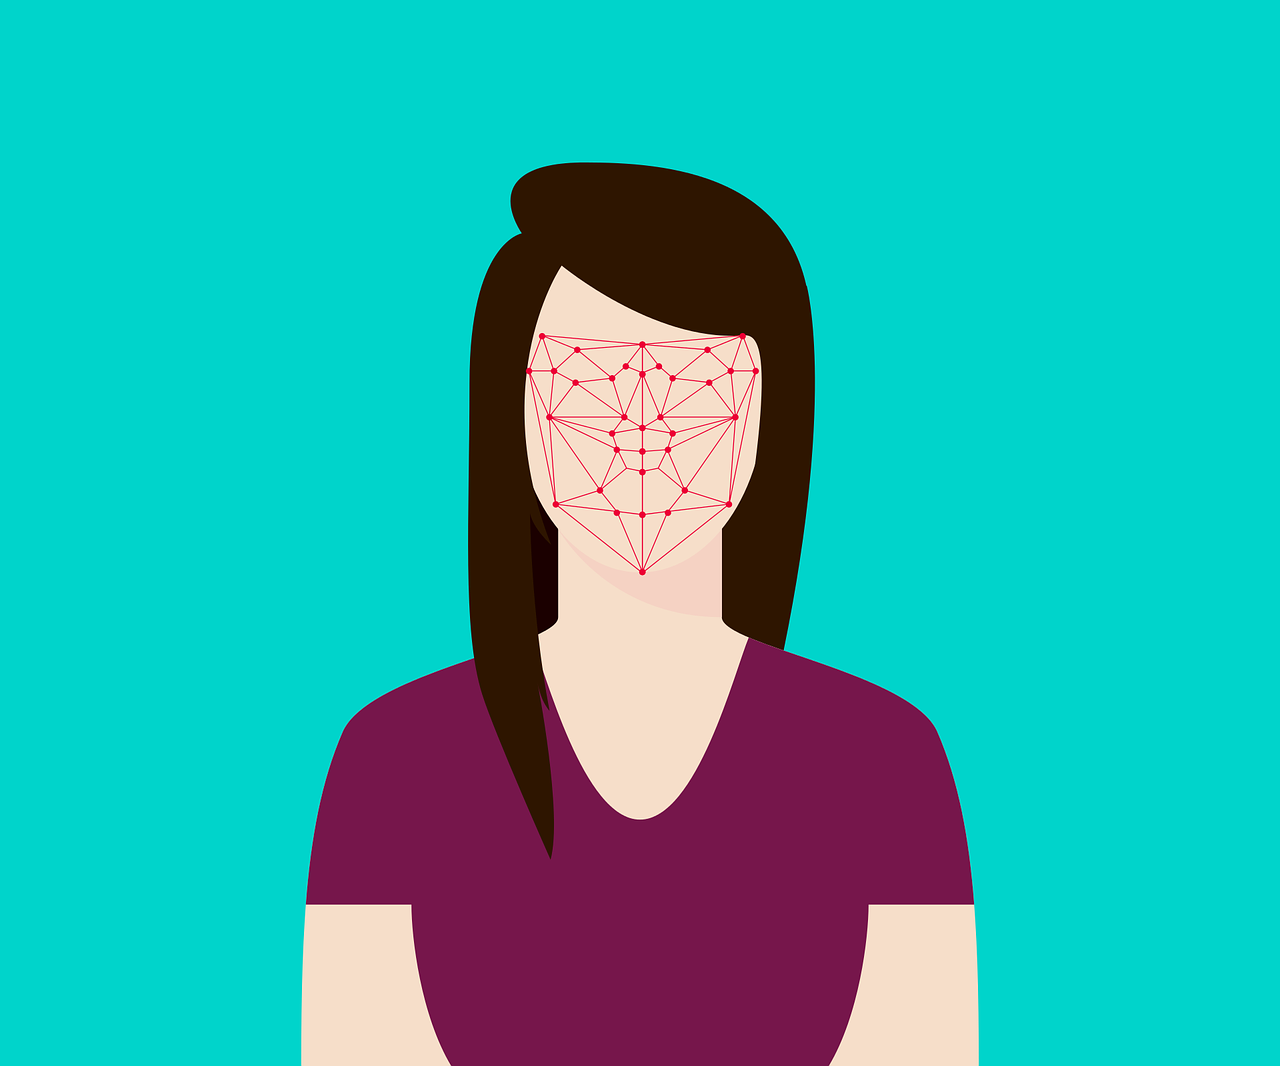 An illustration of a woman's face being mapped